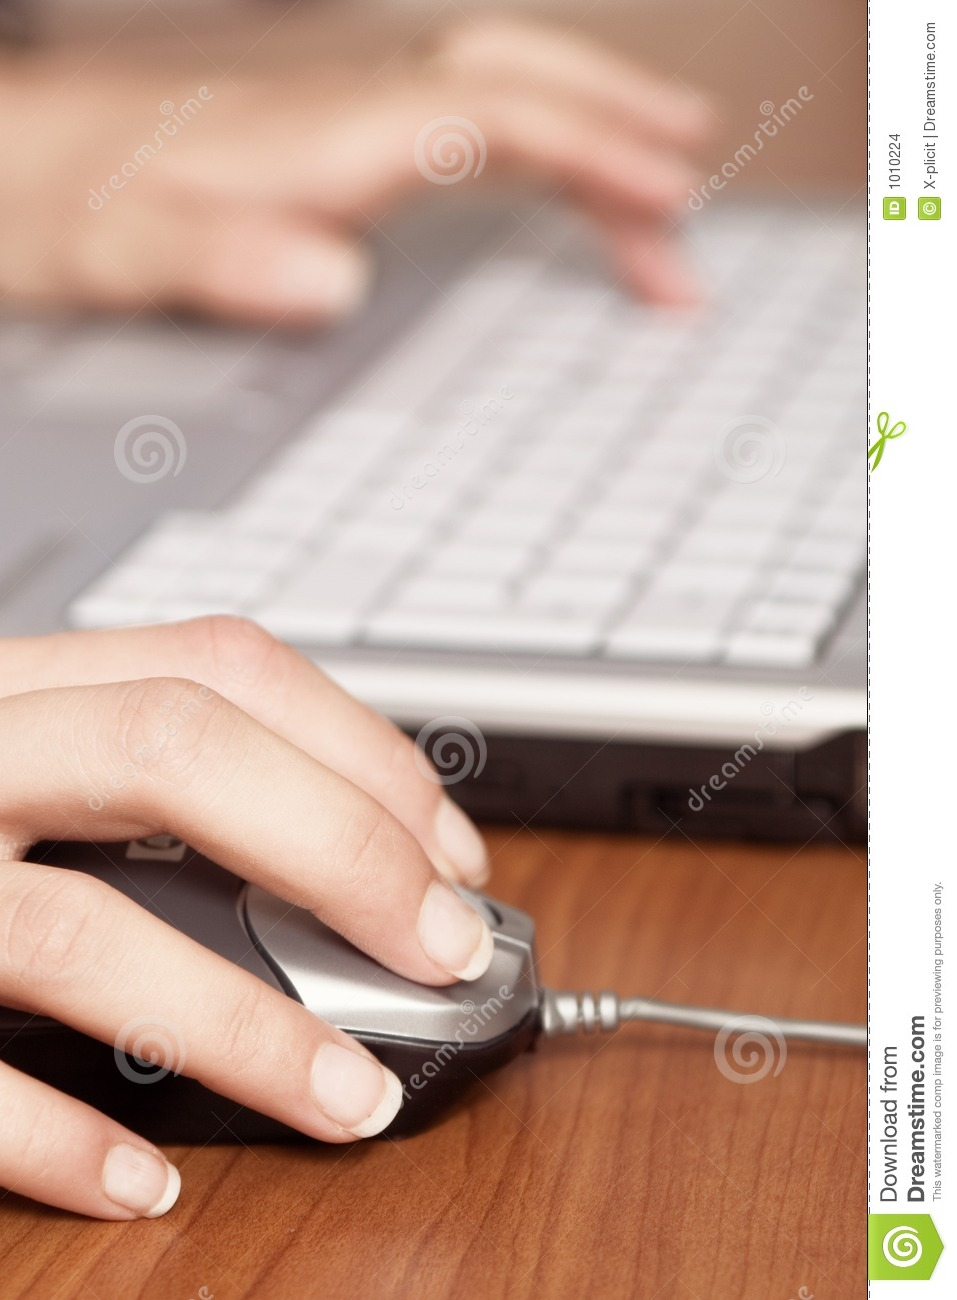 Download Hand On Mouse And Keyboard Blured Stock Photo - Image of mouse, nails: 1010224